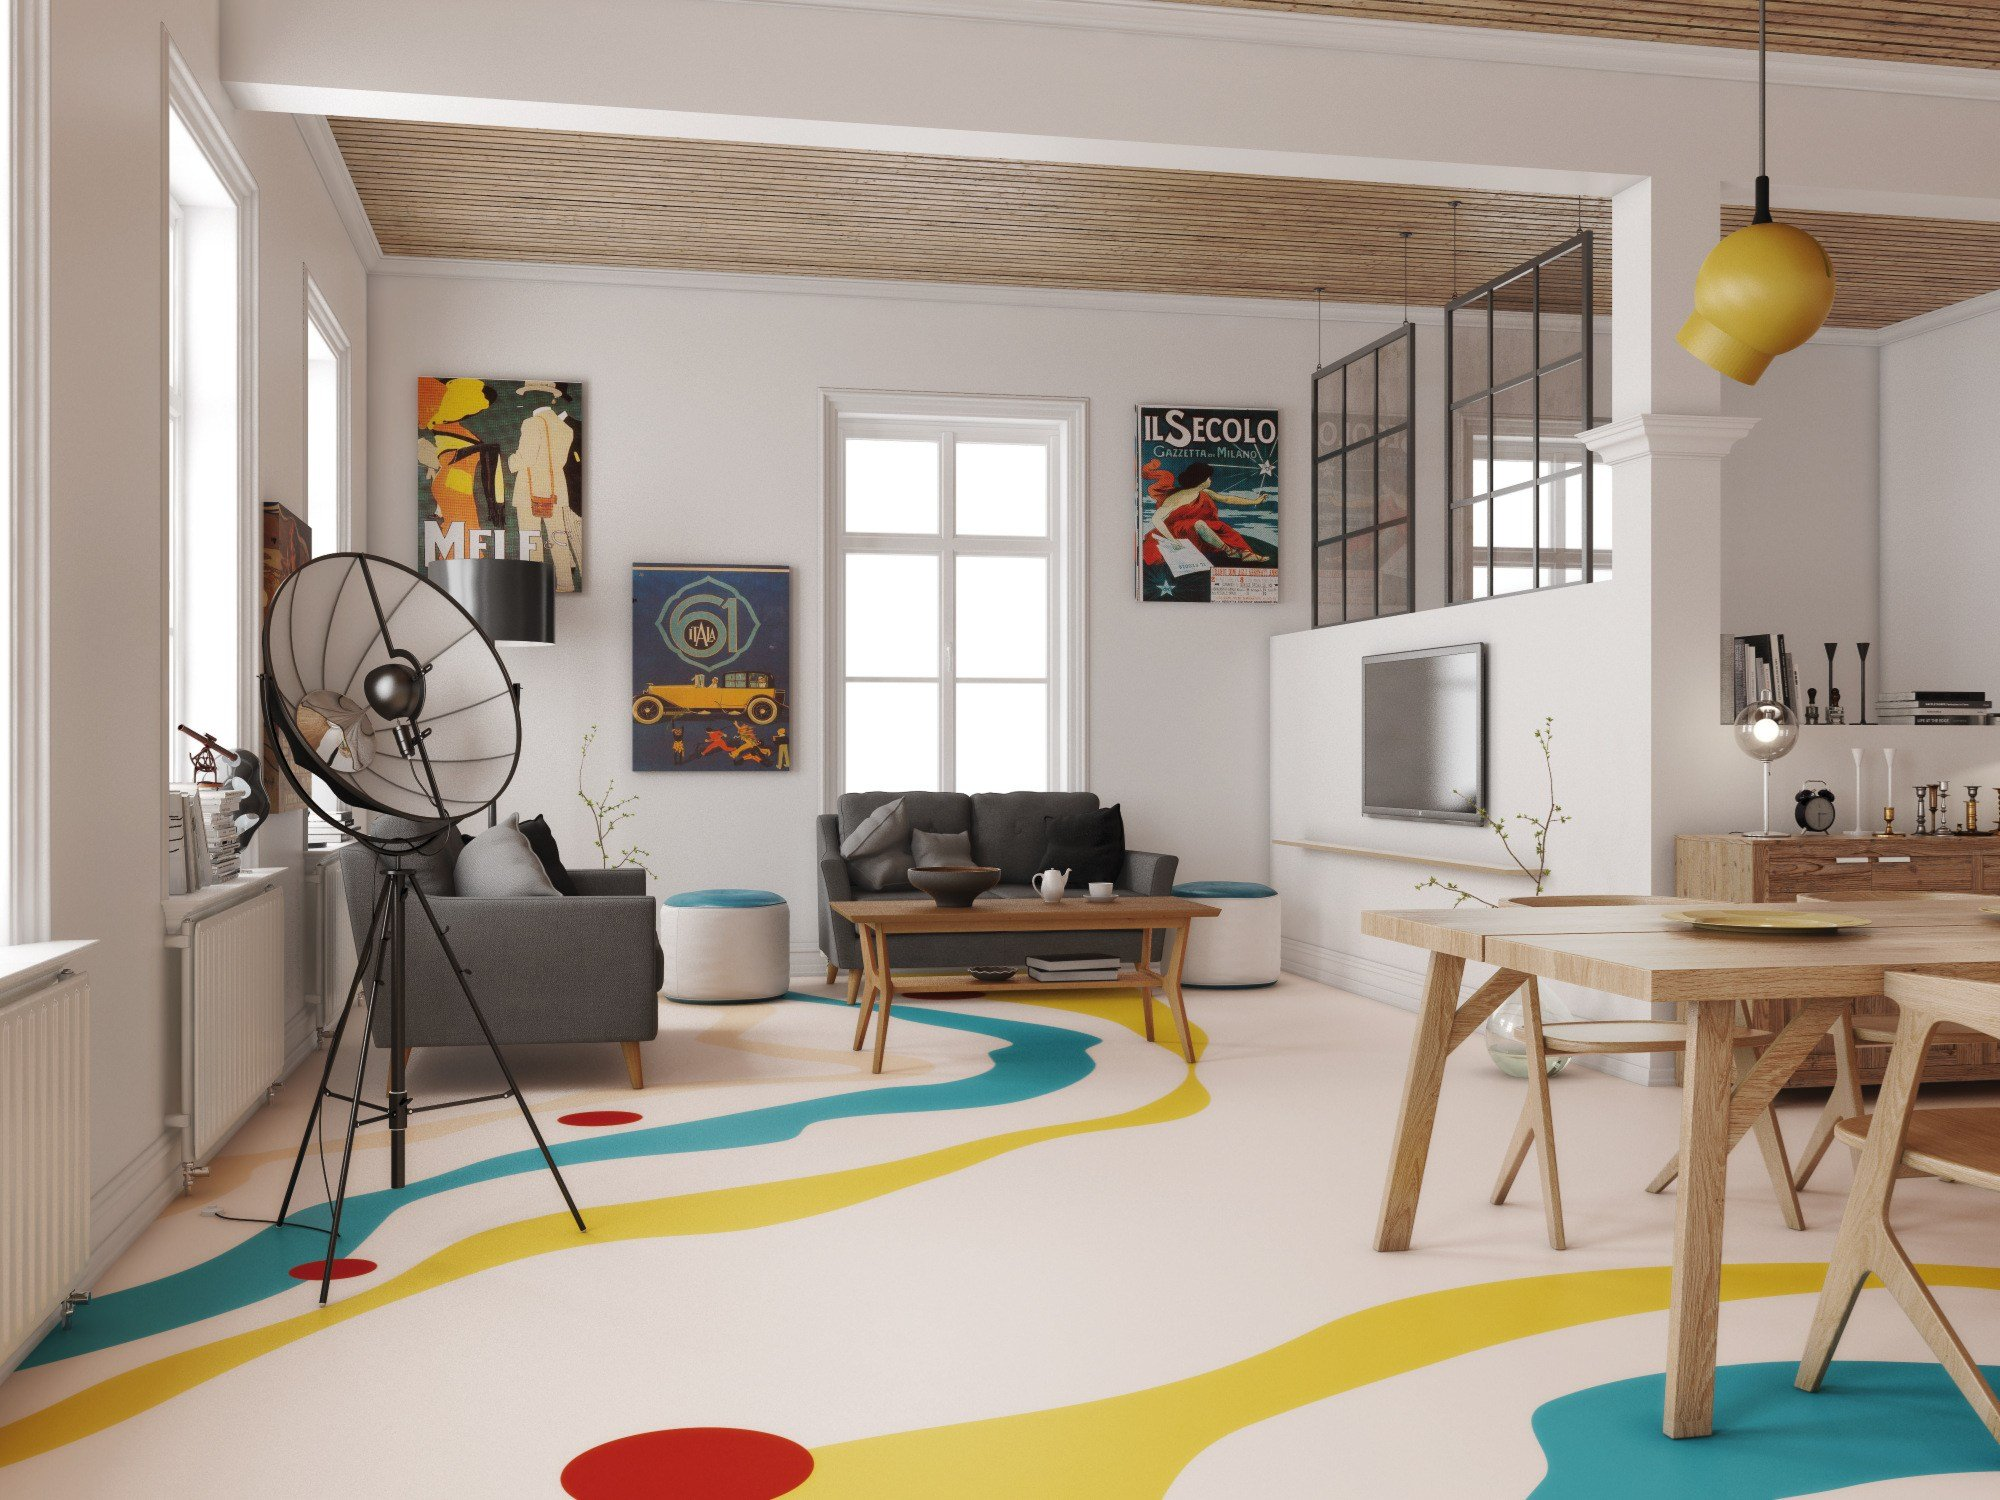 Pavimento continuo in resina mapefloor comfort system by mapei for Resina mapei